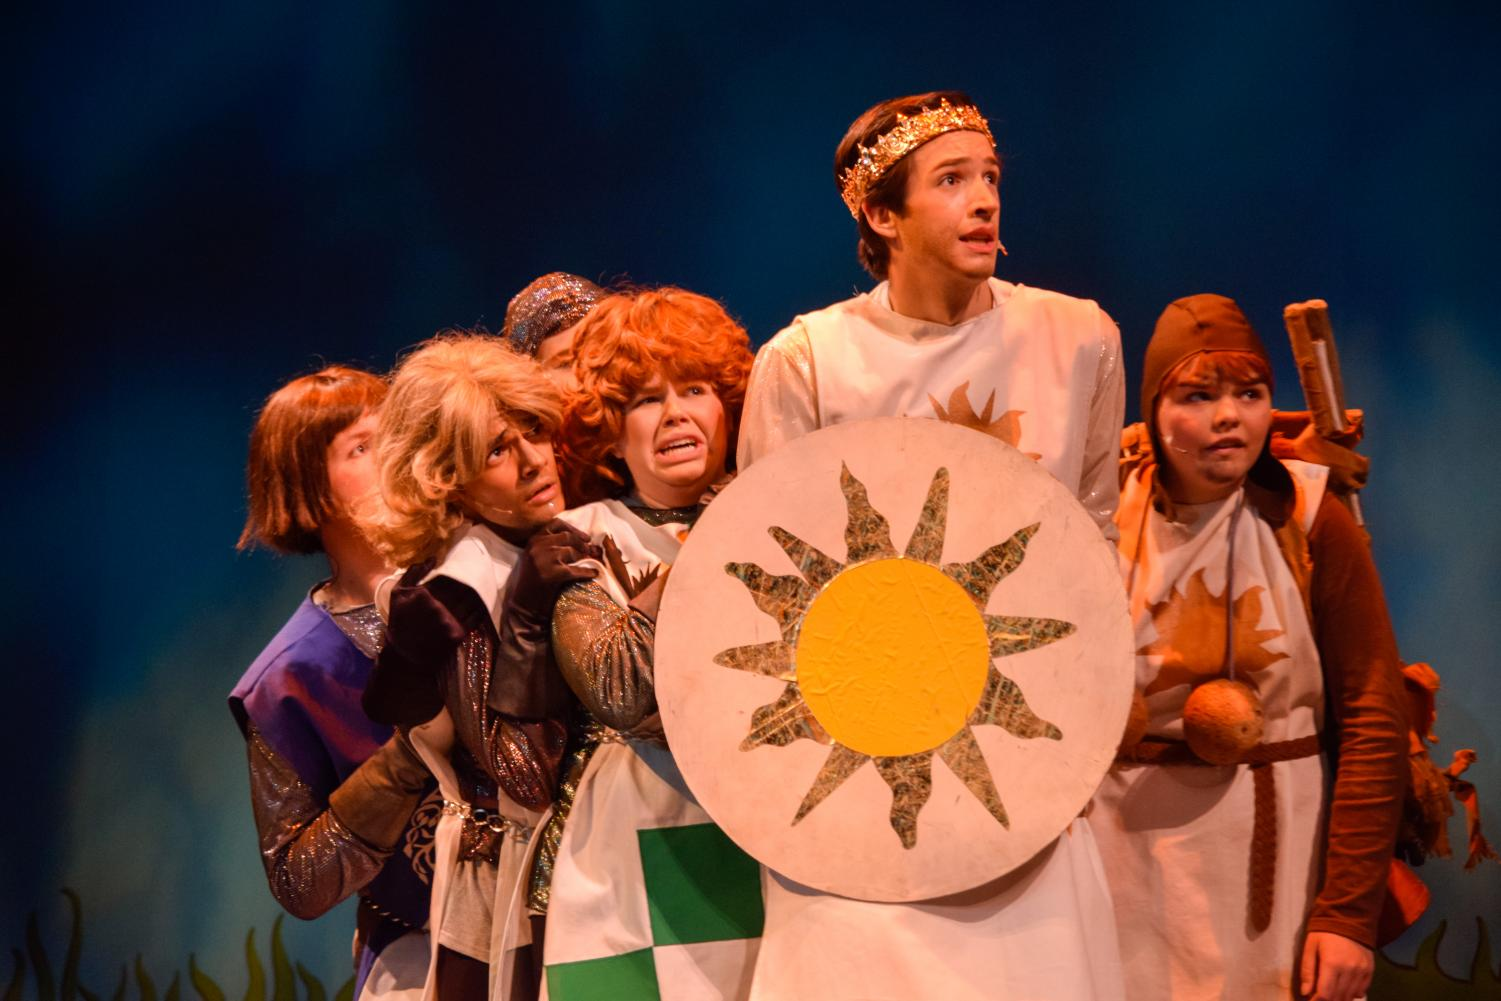 The knights of the round table: Cameron Masse, Matthew Snyder, and Brady McDevitt, hide behind the shield of King Arthur, played by Matt Lewis, with his trusty servant, played by Susie Walters.